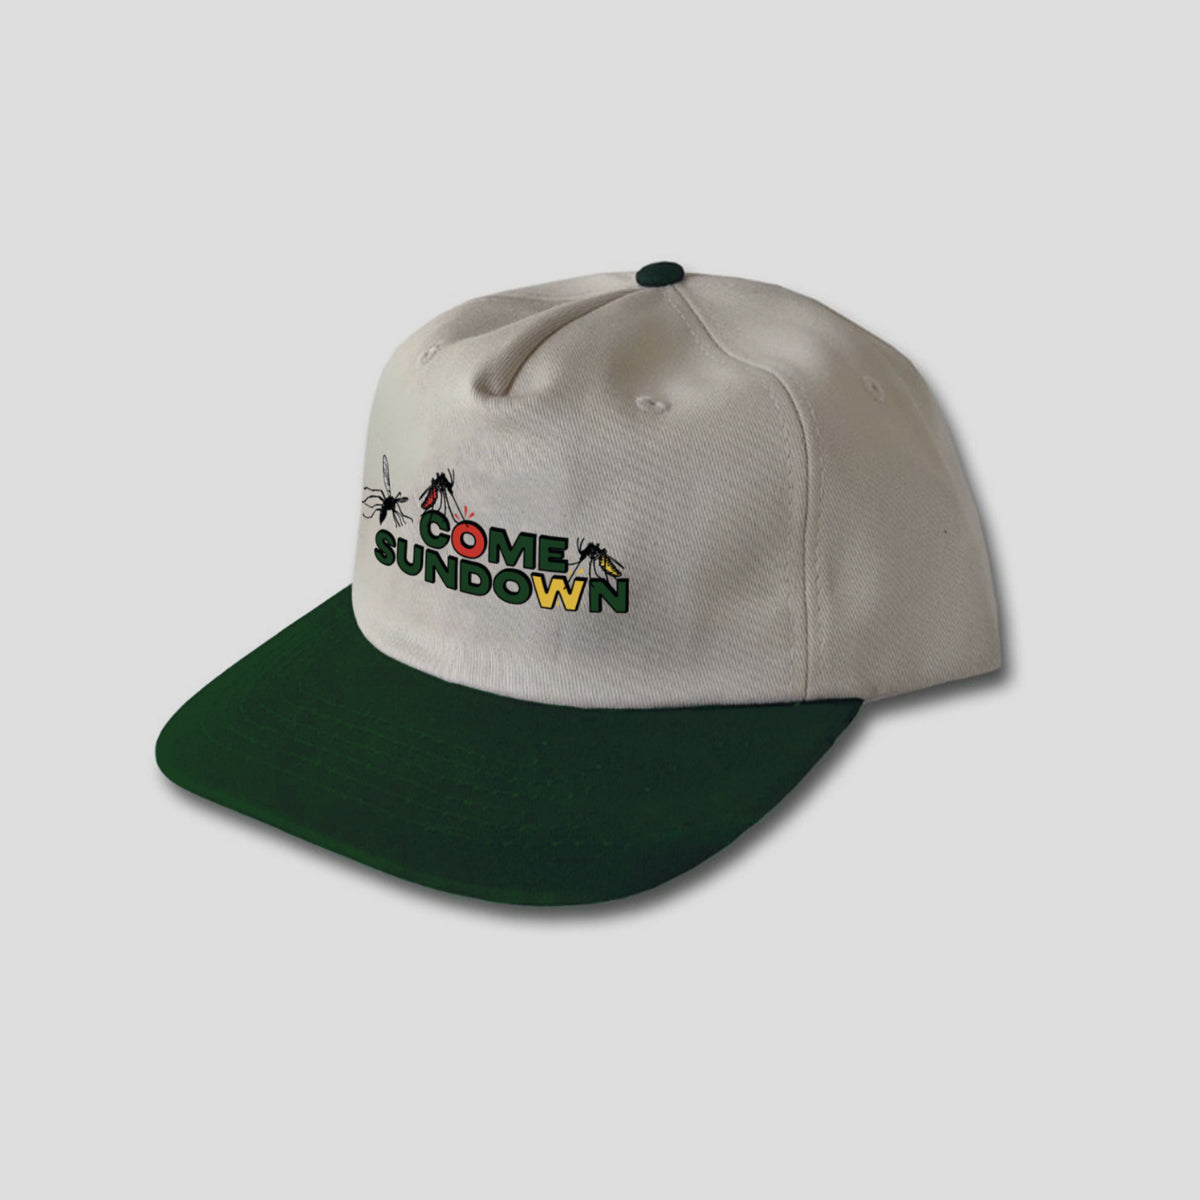 "COME SUNDOWN ""MOSQUITO"" CAP CREAM/GREEN"